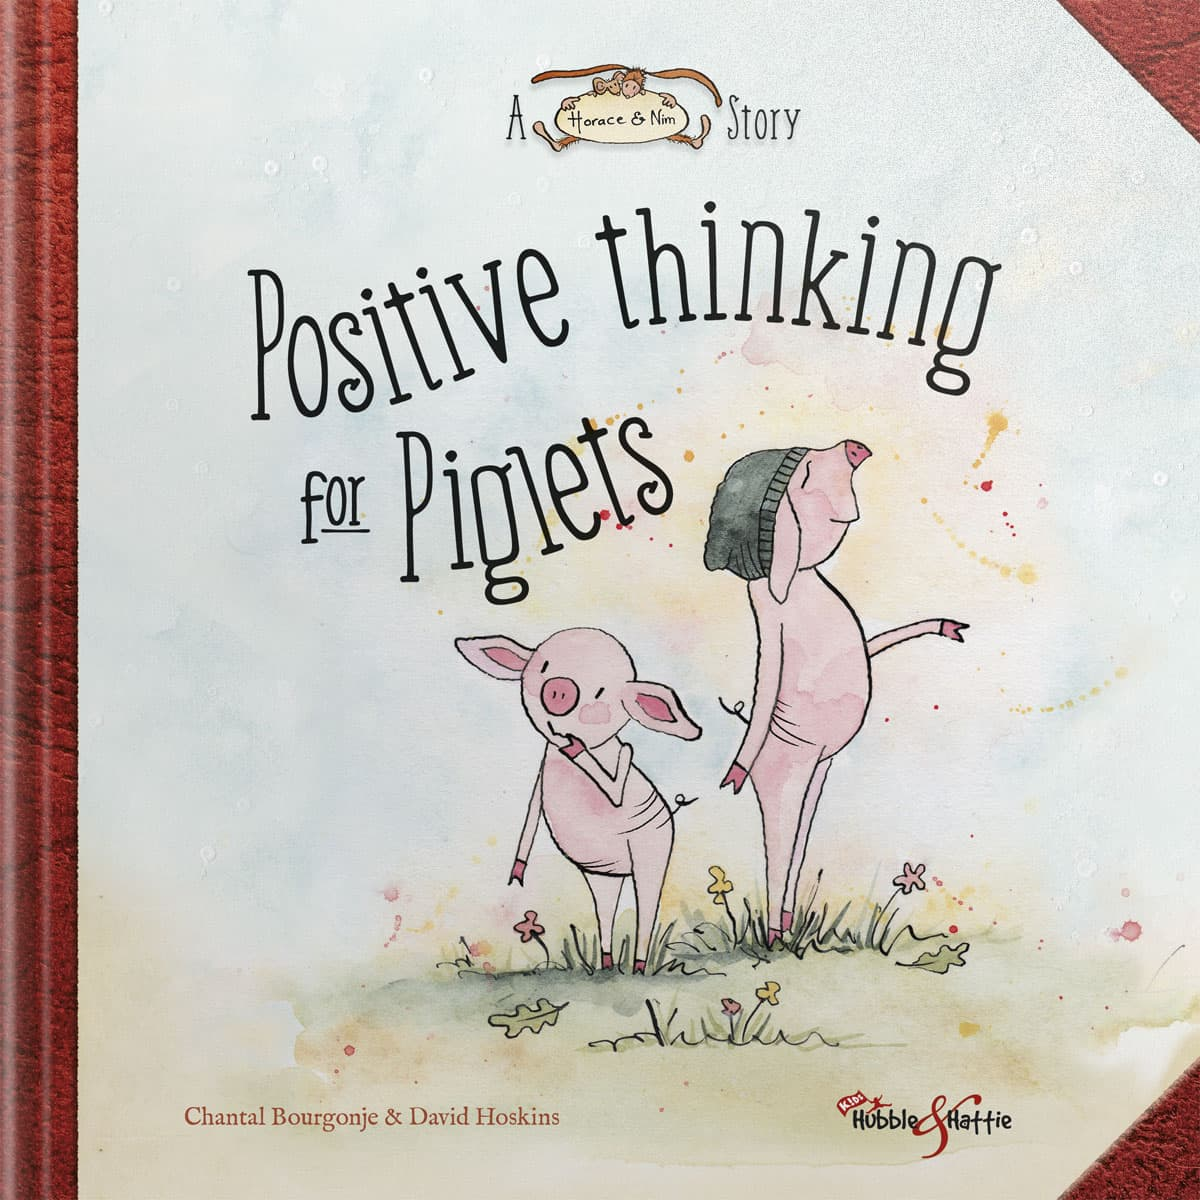 Positive thinking for Piglets – A Horace & Nim Story